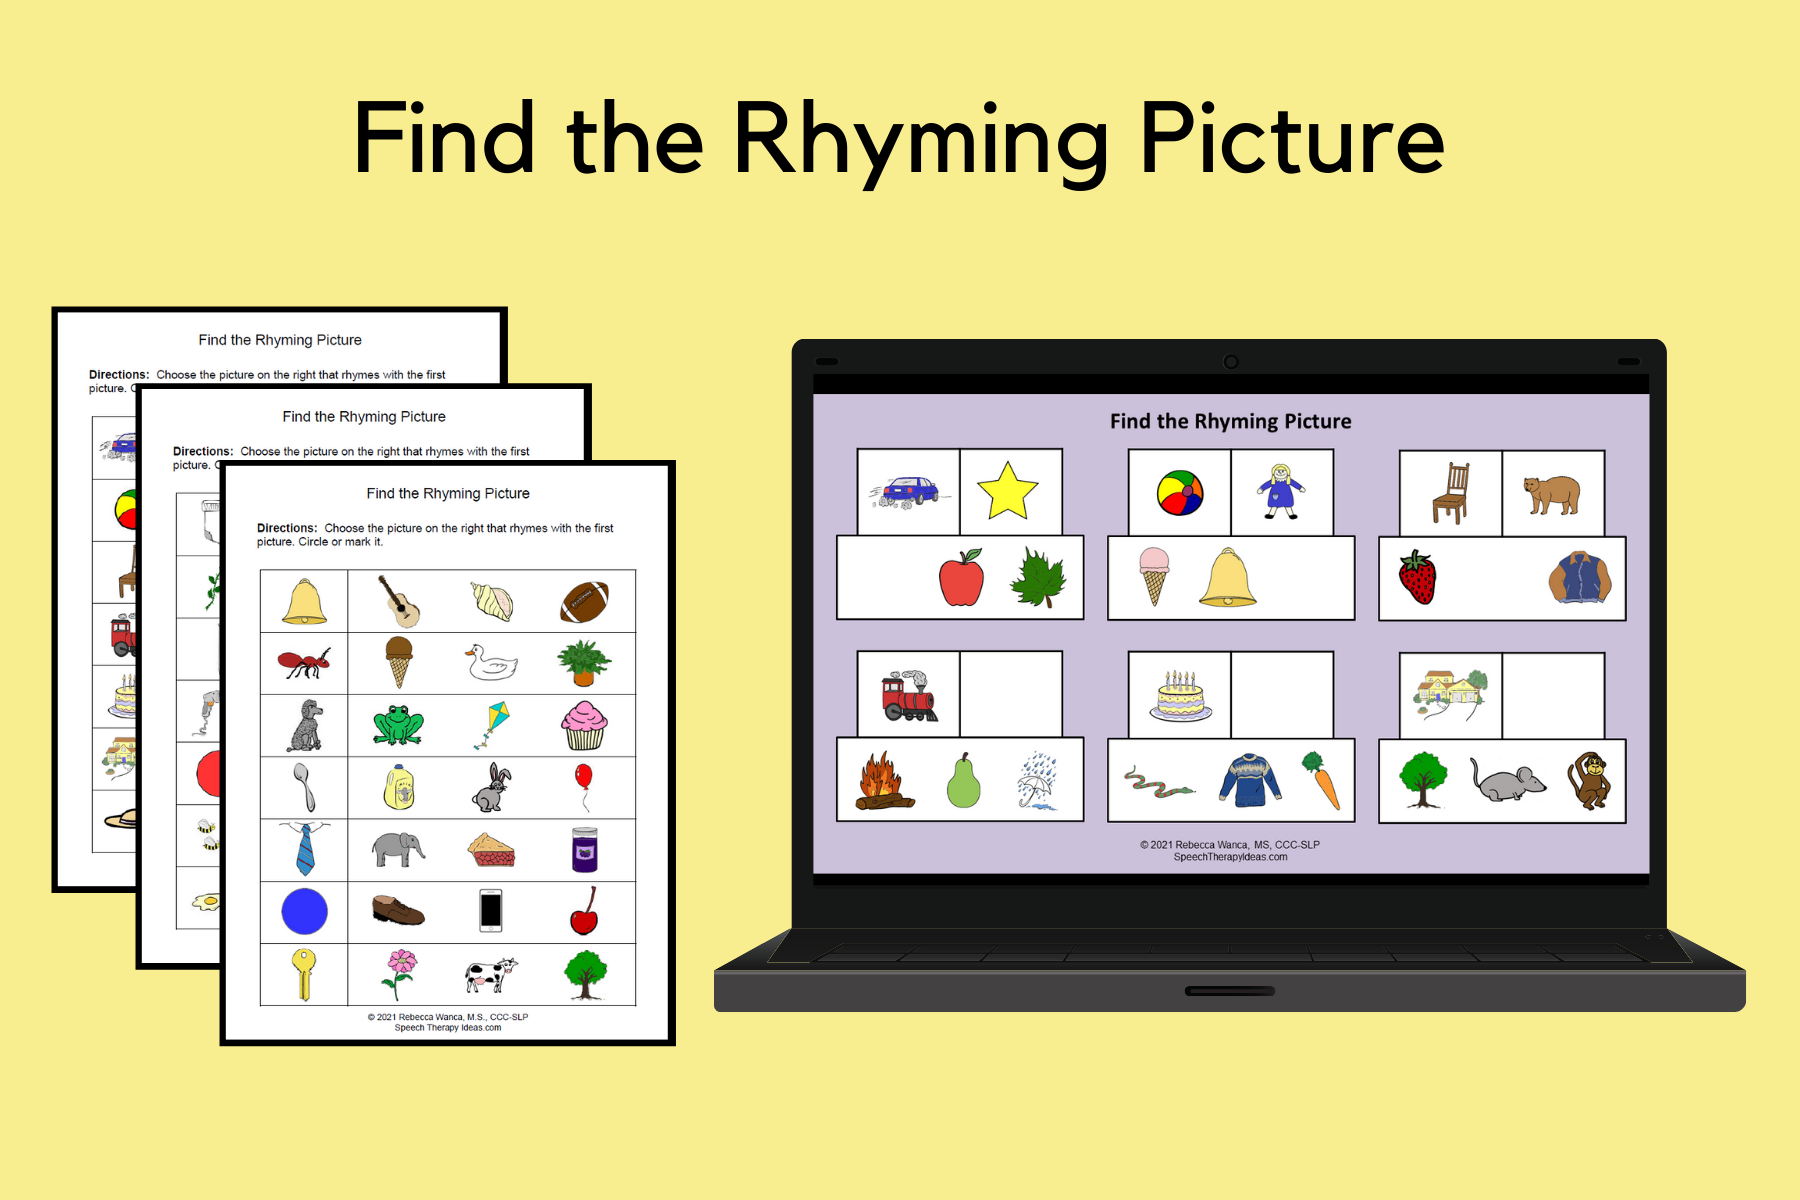 Find the Rhyming Picture